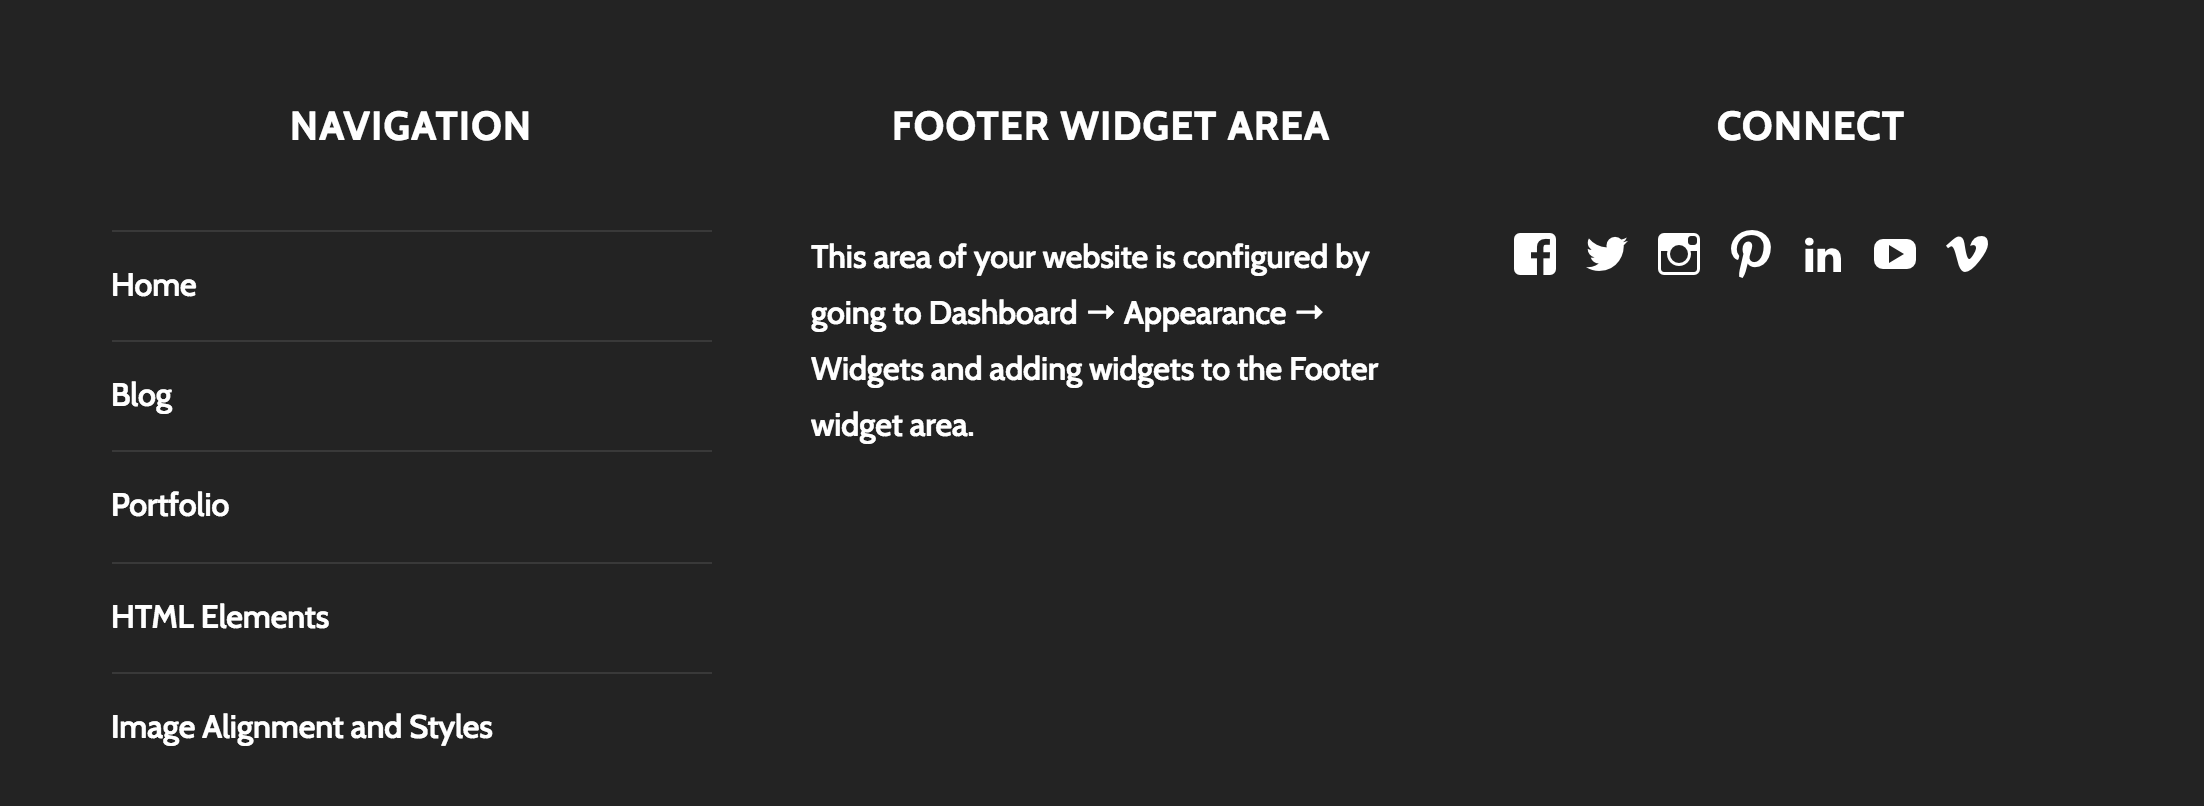 add copyright footer thesis theme Footer is an indispensable area of the website just as the header homes the primary navigation, planning to replicate the navigation menu in the footer is.